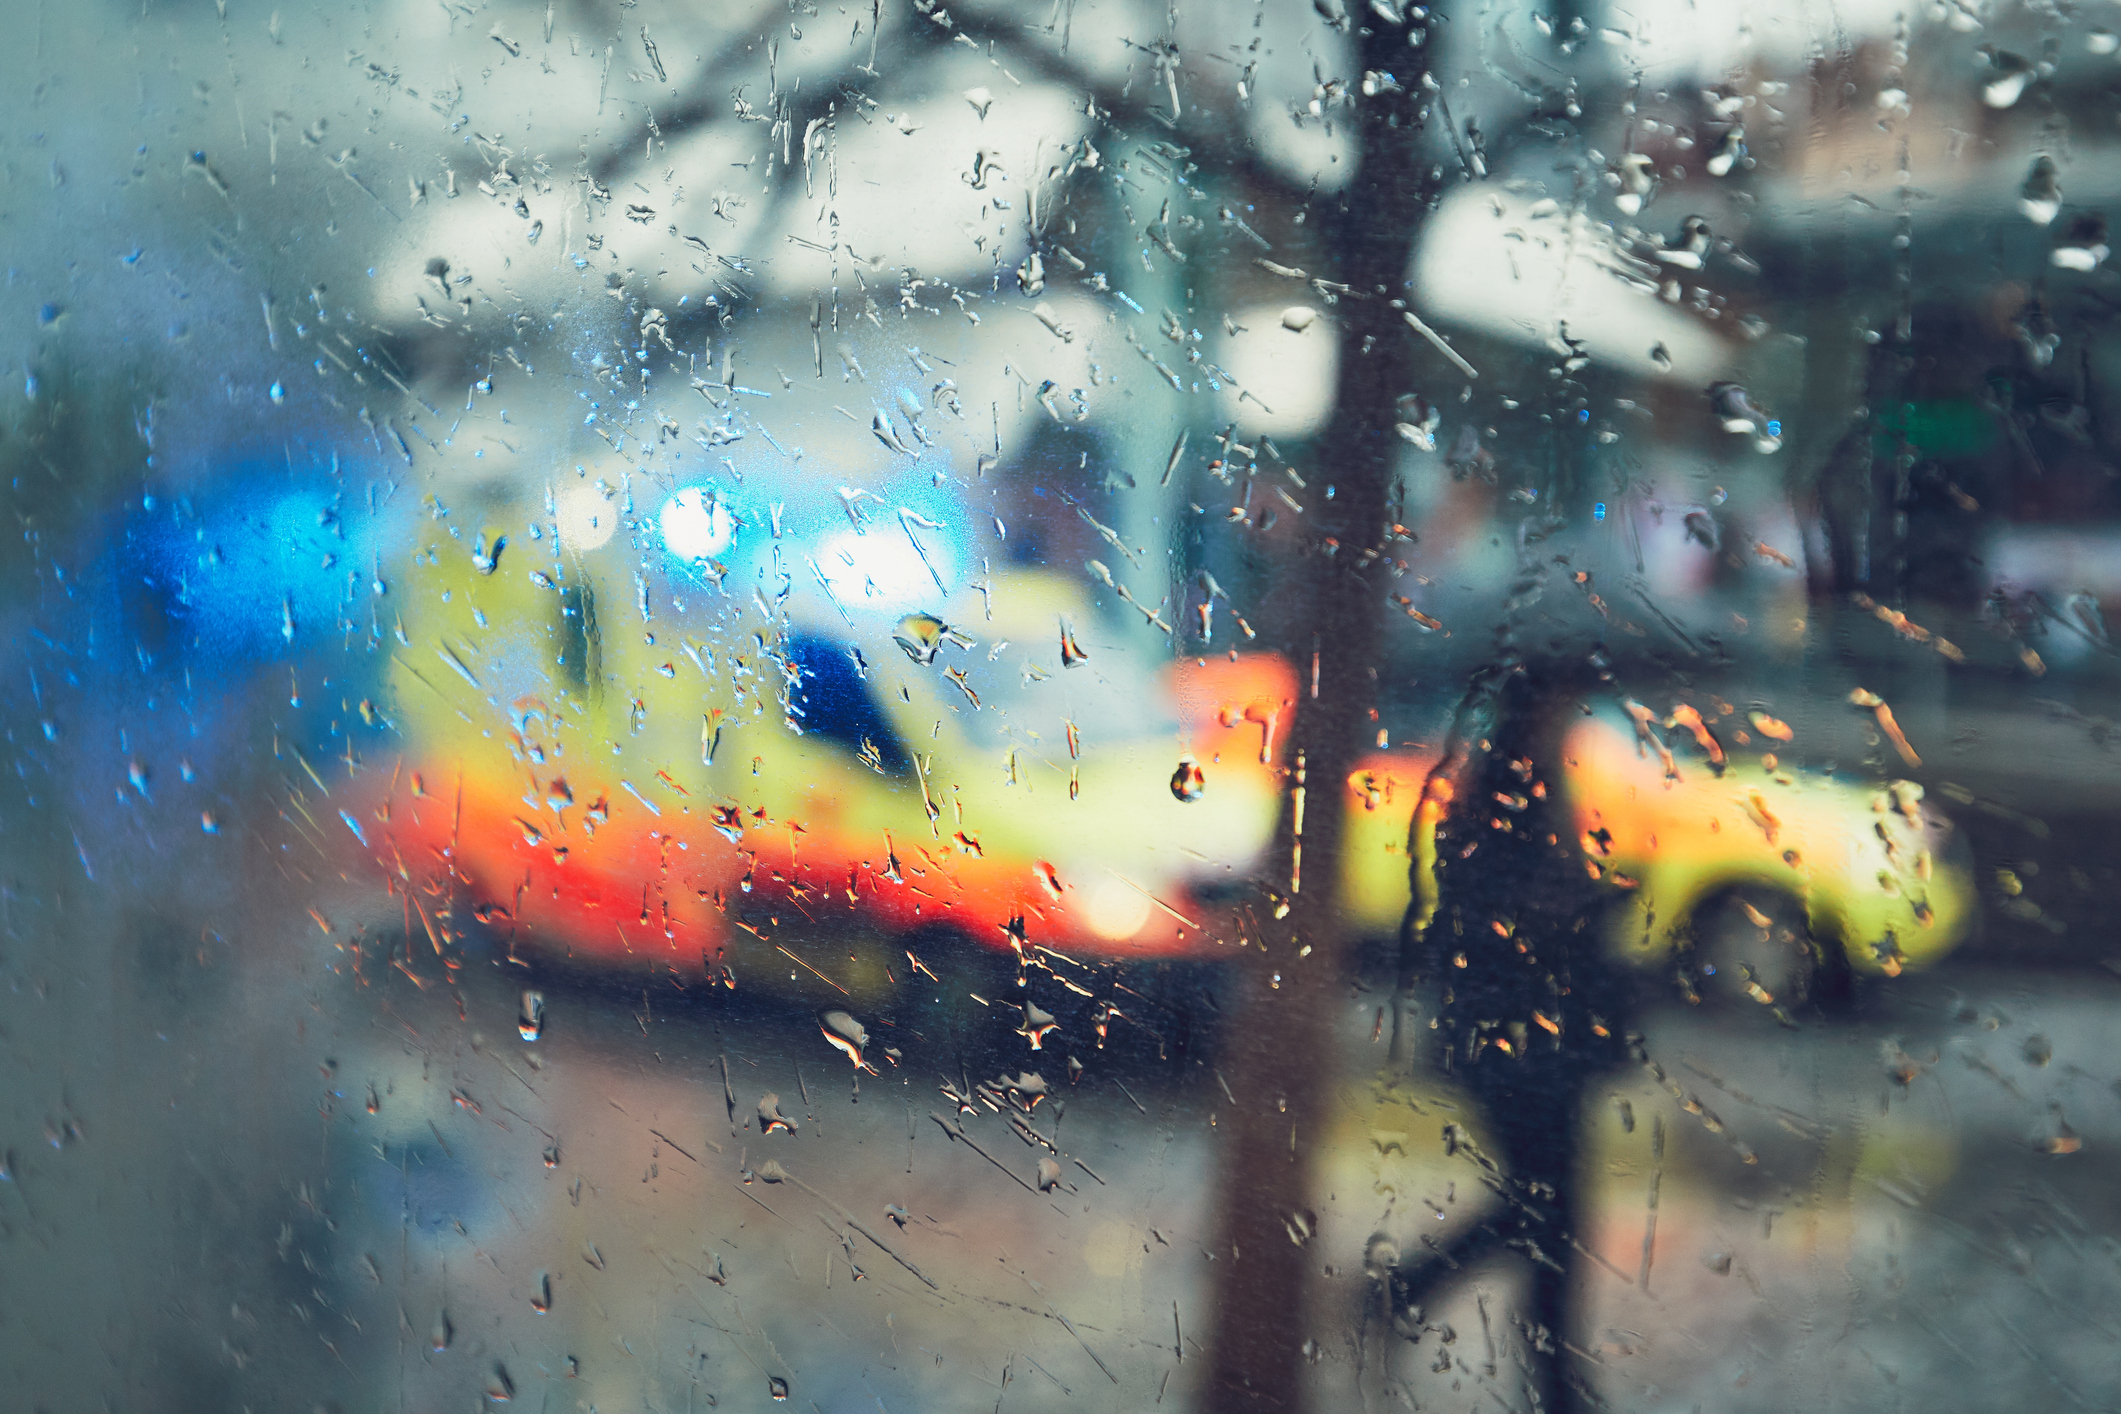 Emergency vehicles outside a rained on window